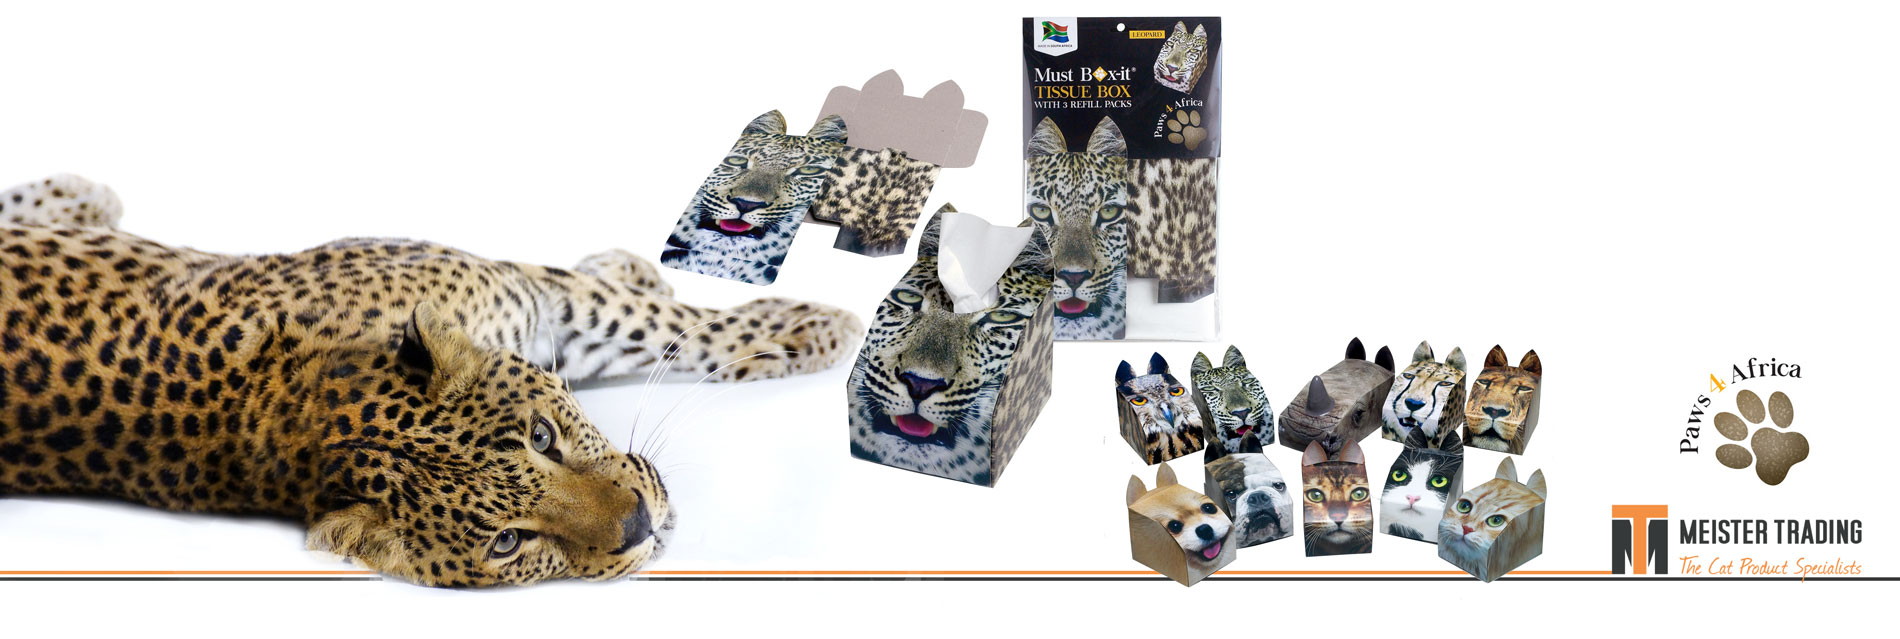 Paws 4 Africa slider | Meister Trading | The Cat Product Specialist